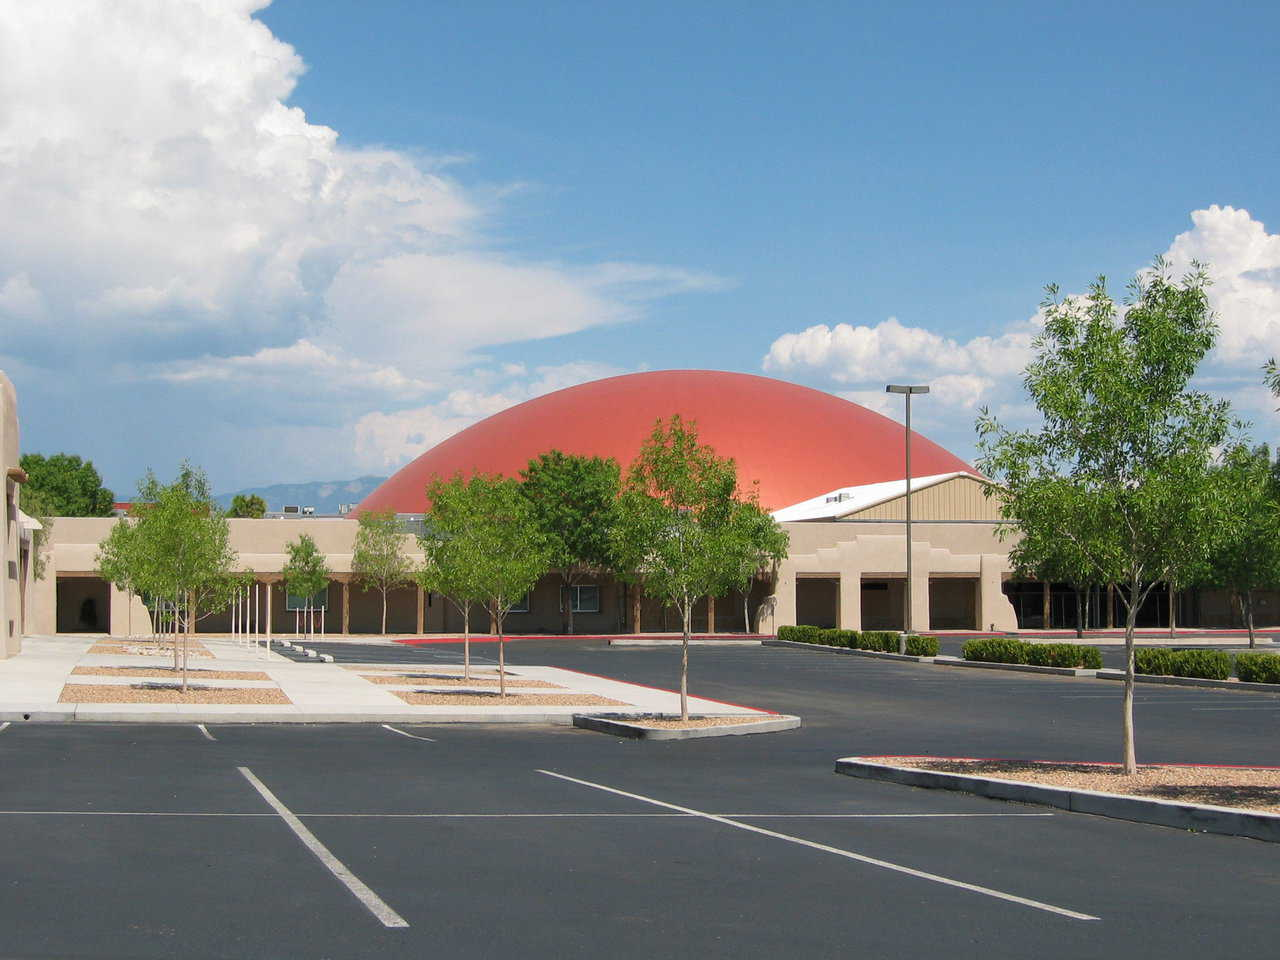 Legacy Church — This 192' dome, Legacy Church, was built in 2004. It is a 3000 seat church in New Mexico.